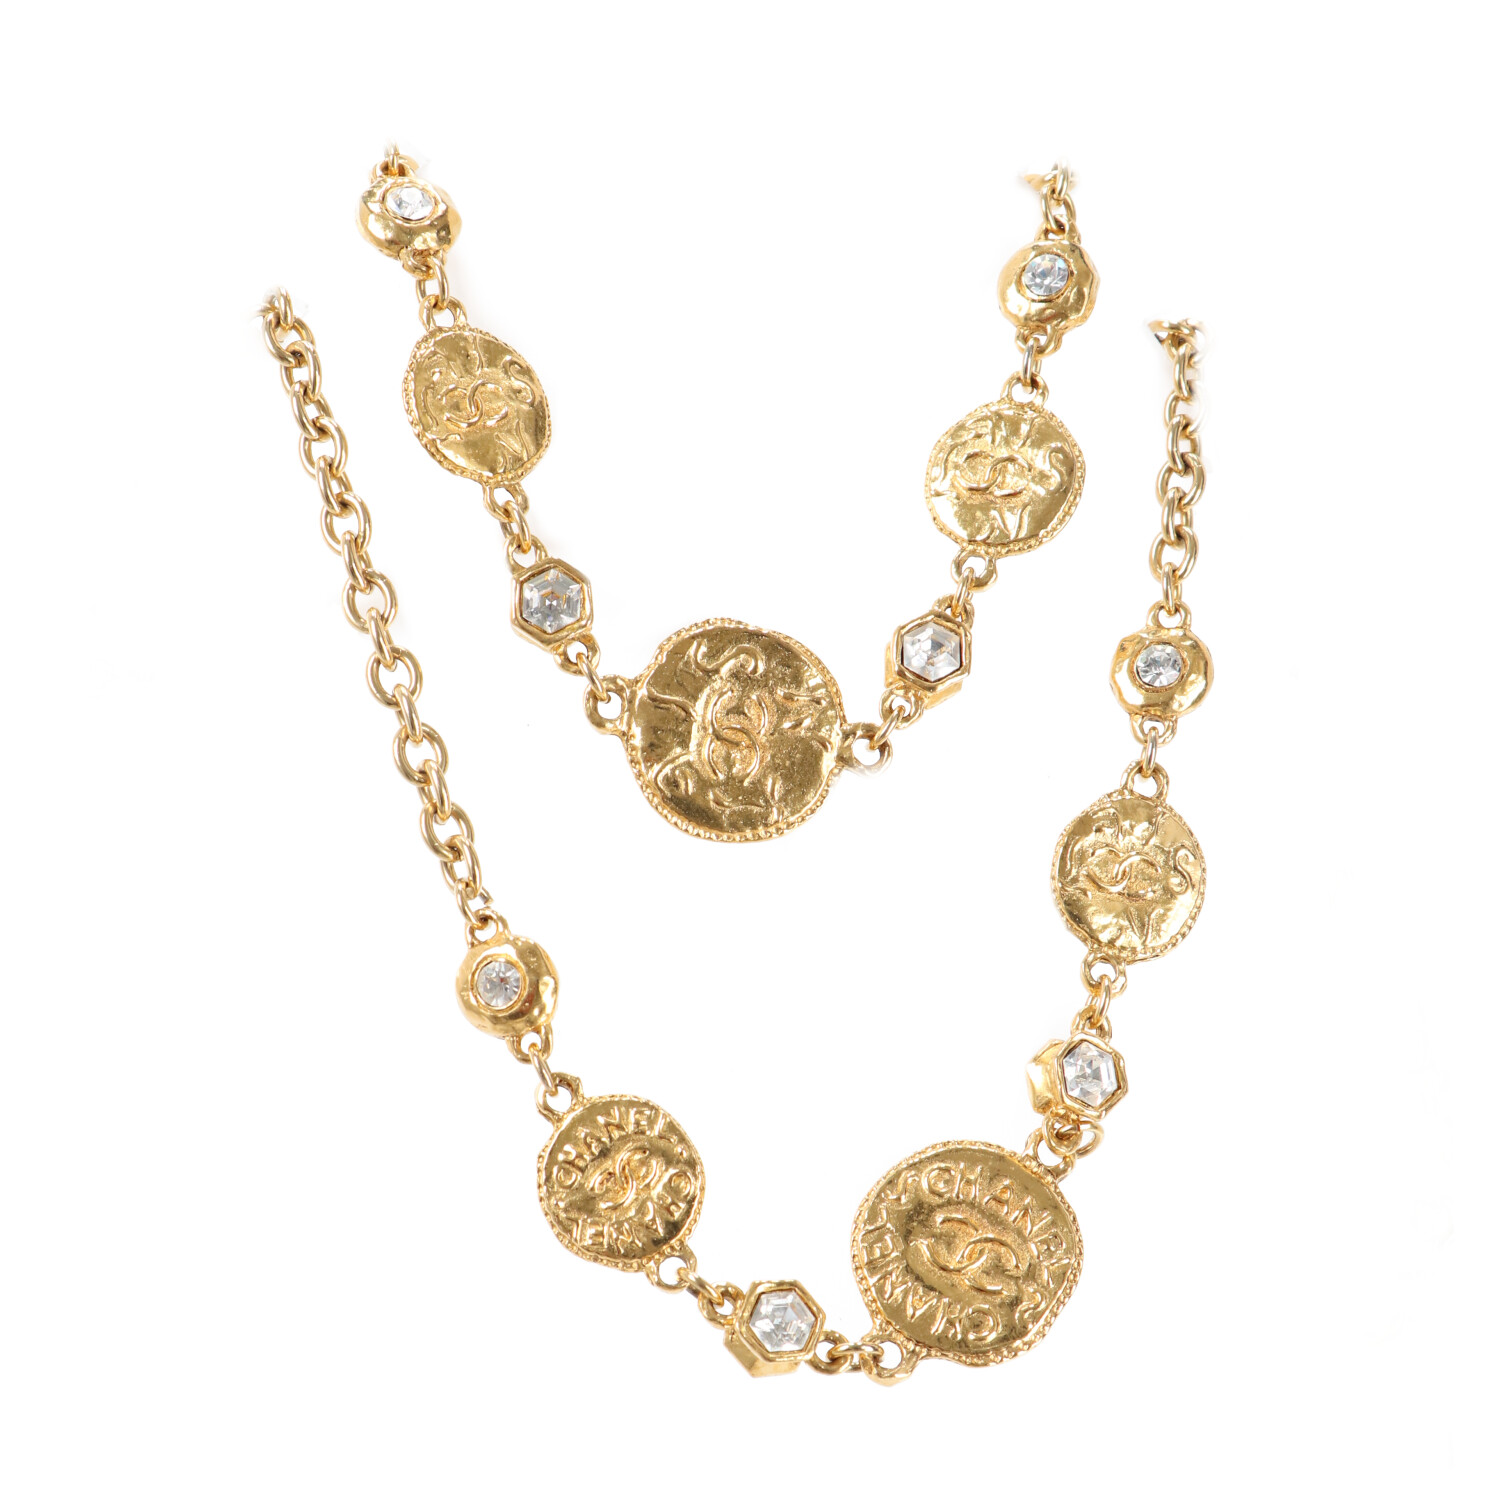 Chanel Gold-Toned 'CC' Beveled Necklace